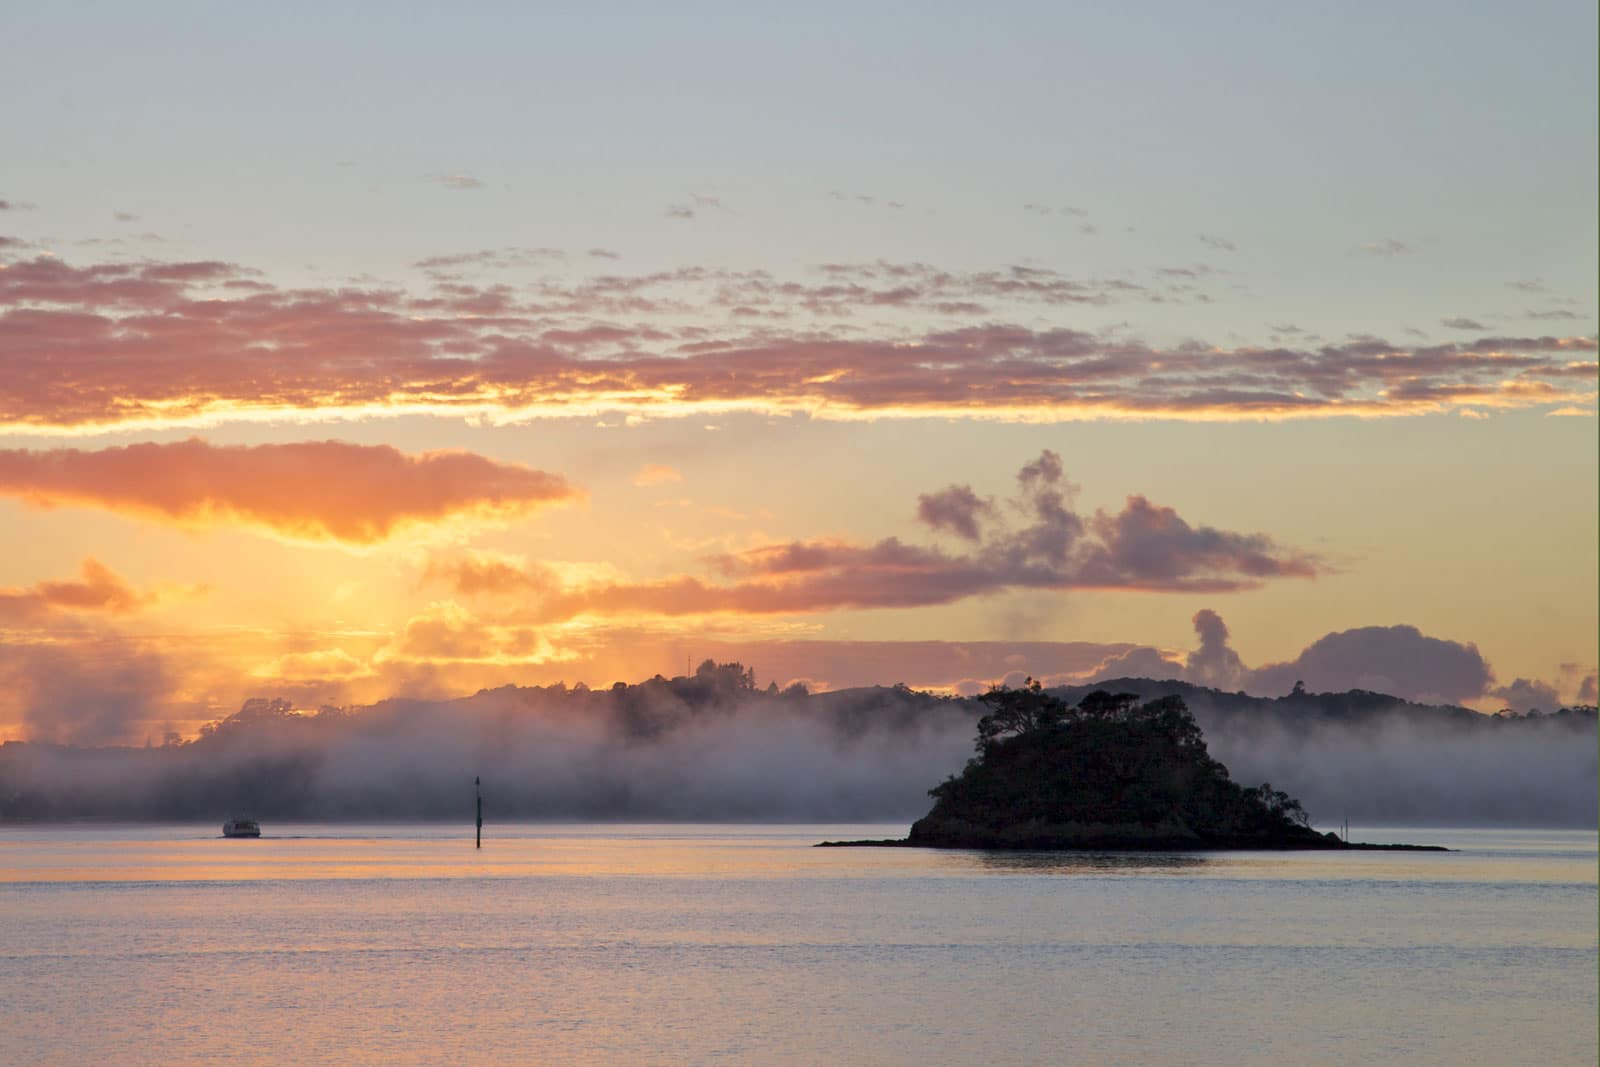 Private and Luxury Yacht Charter Bay of Islands - Charter Destination in New Zealand